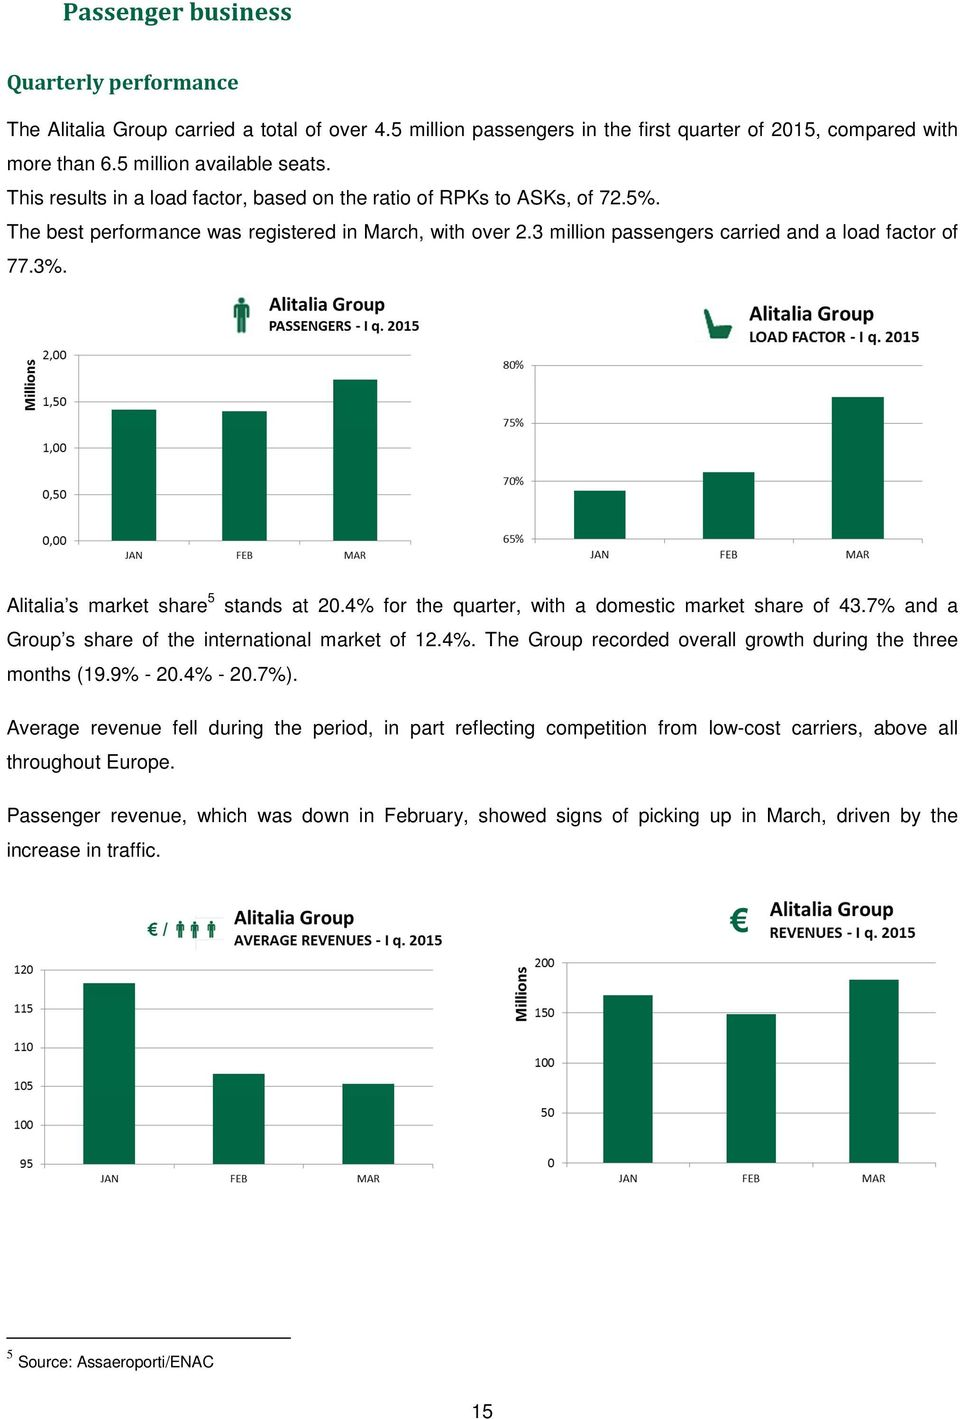 Alitalia s market share 5 stands at 20.4% for the quarter, with a domestic market share of 43.7% and a Group s share of the international market of 12.4%. The Group recorded overall growth during the three months (19.